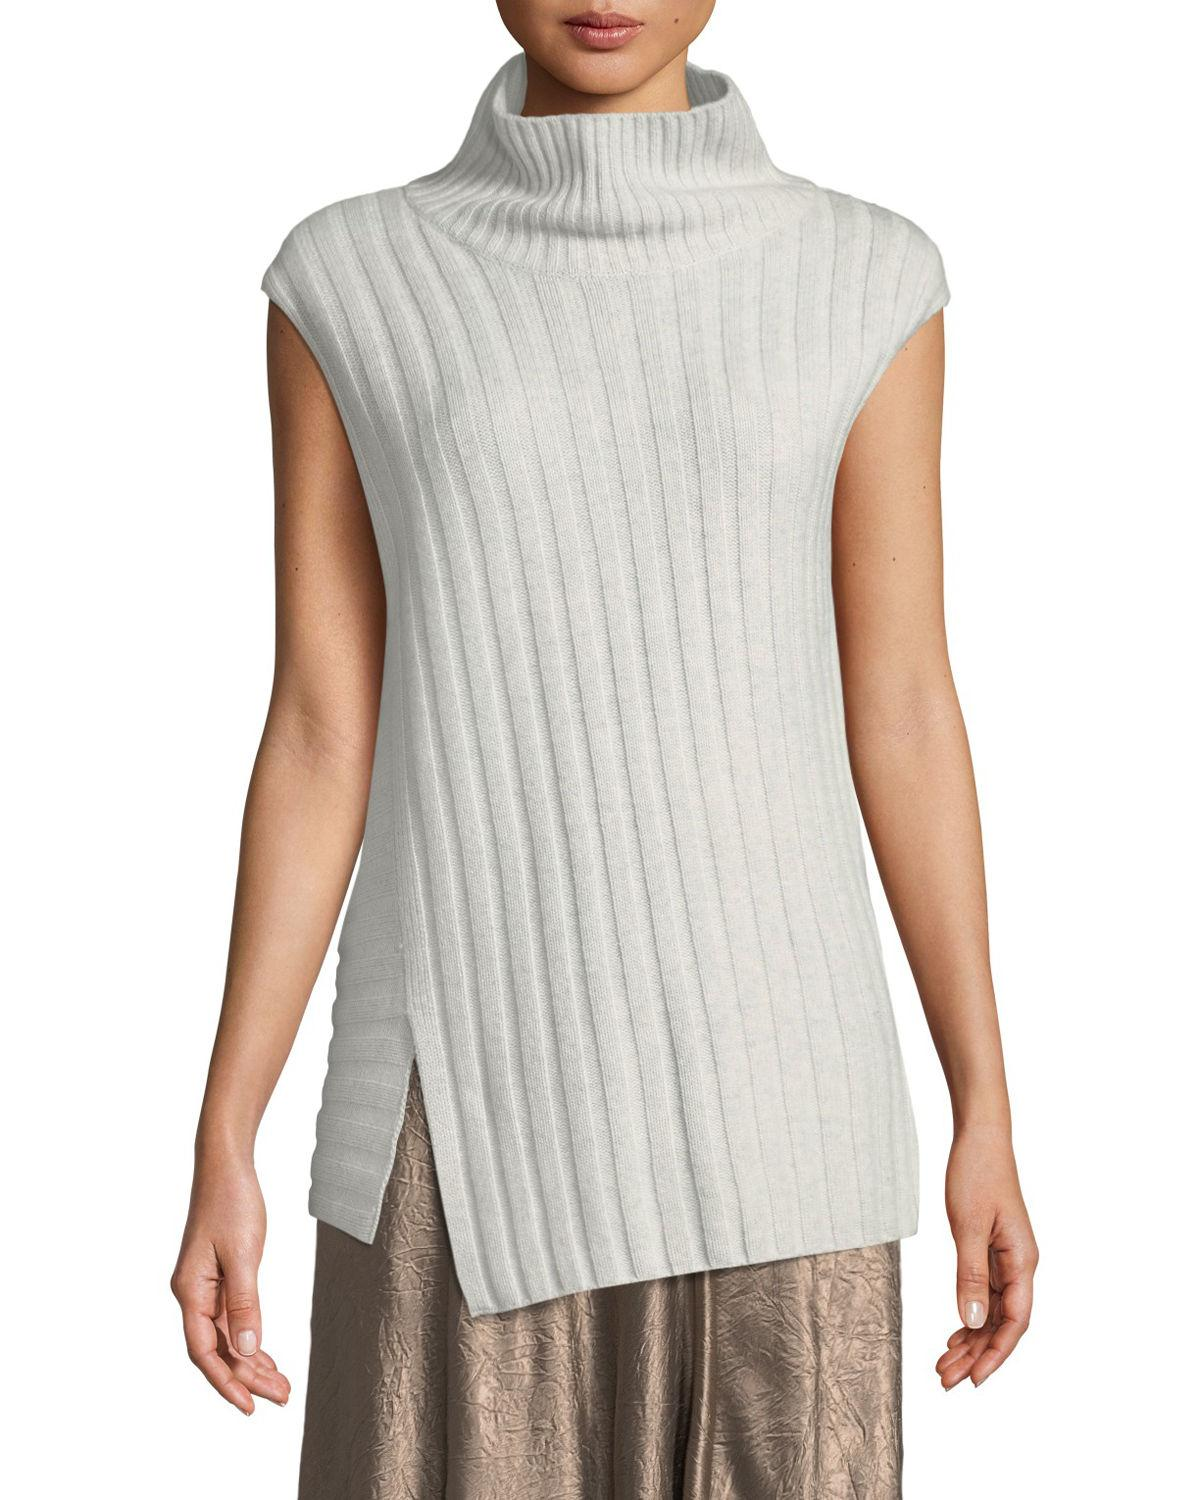 6321f28d9b309 Lyst - Vince Mixed-rib Wool-cashmere Turtleneck Sweater in Gray ...